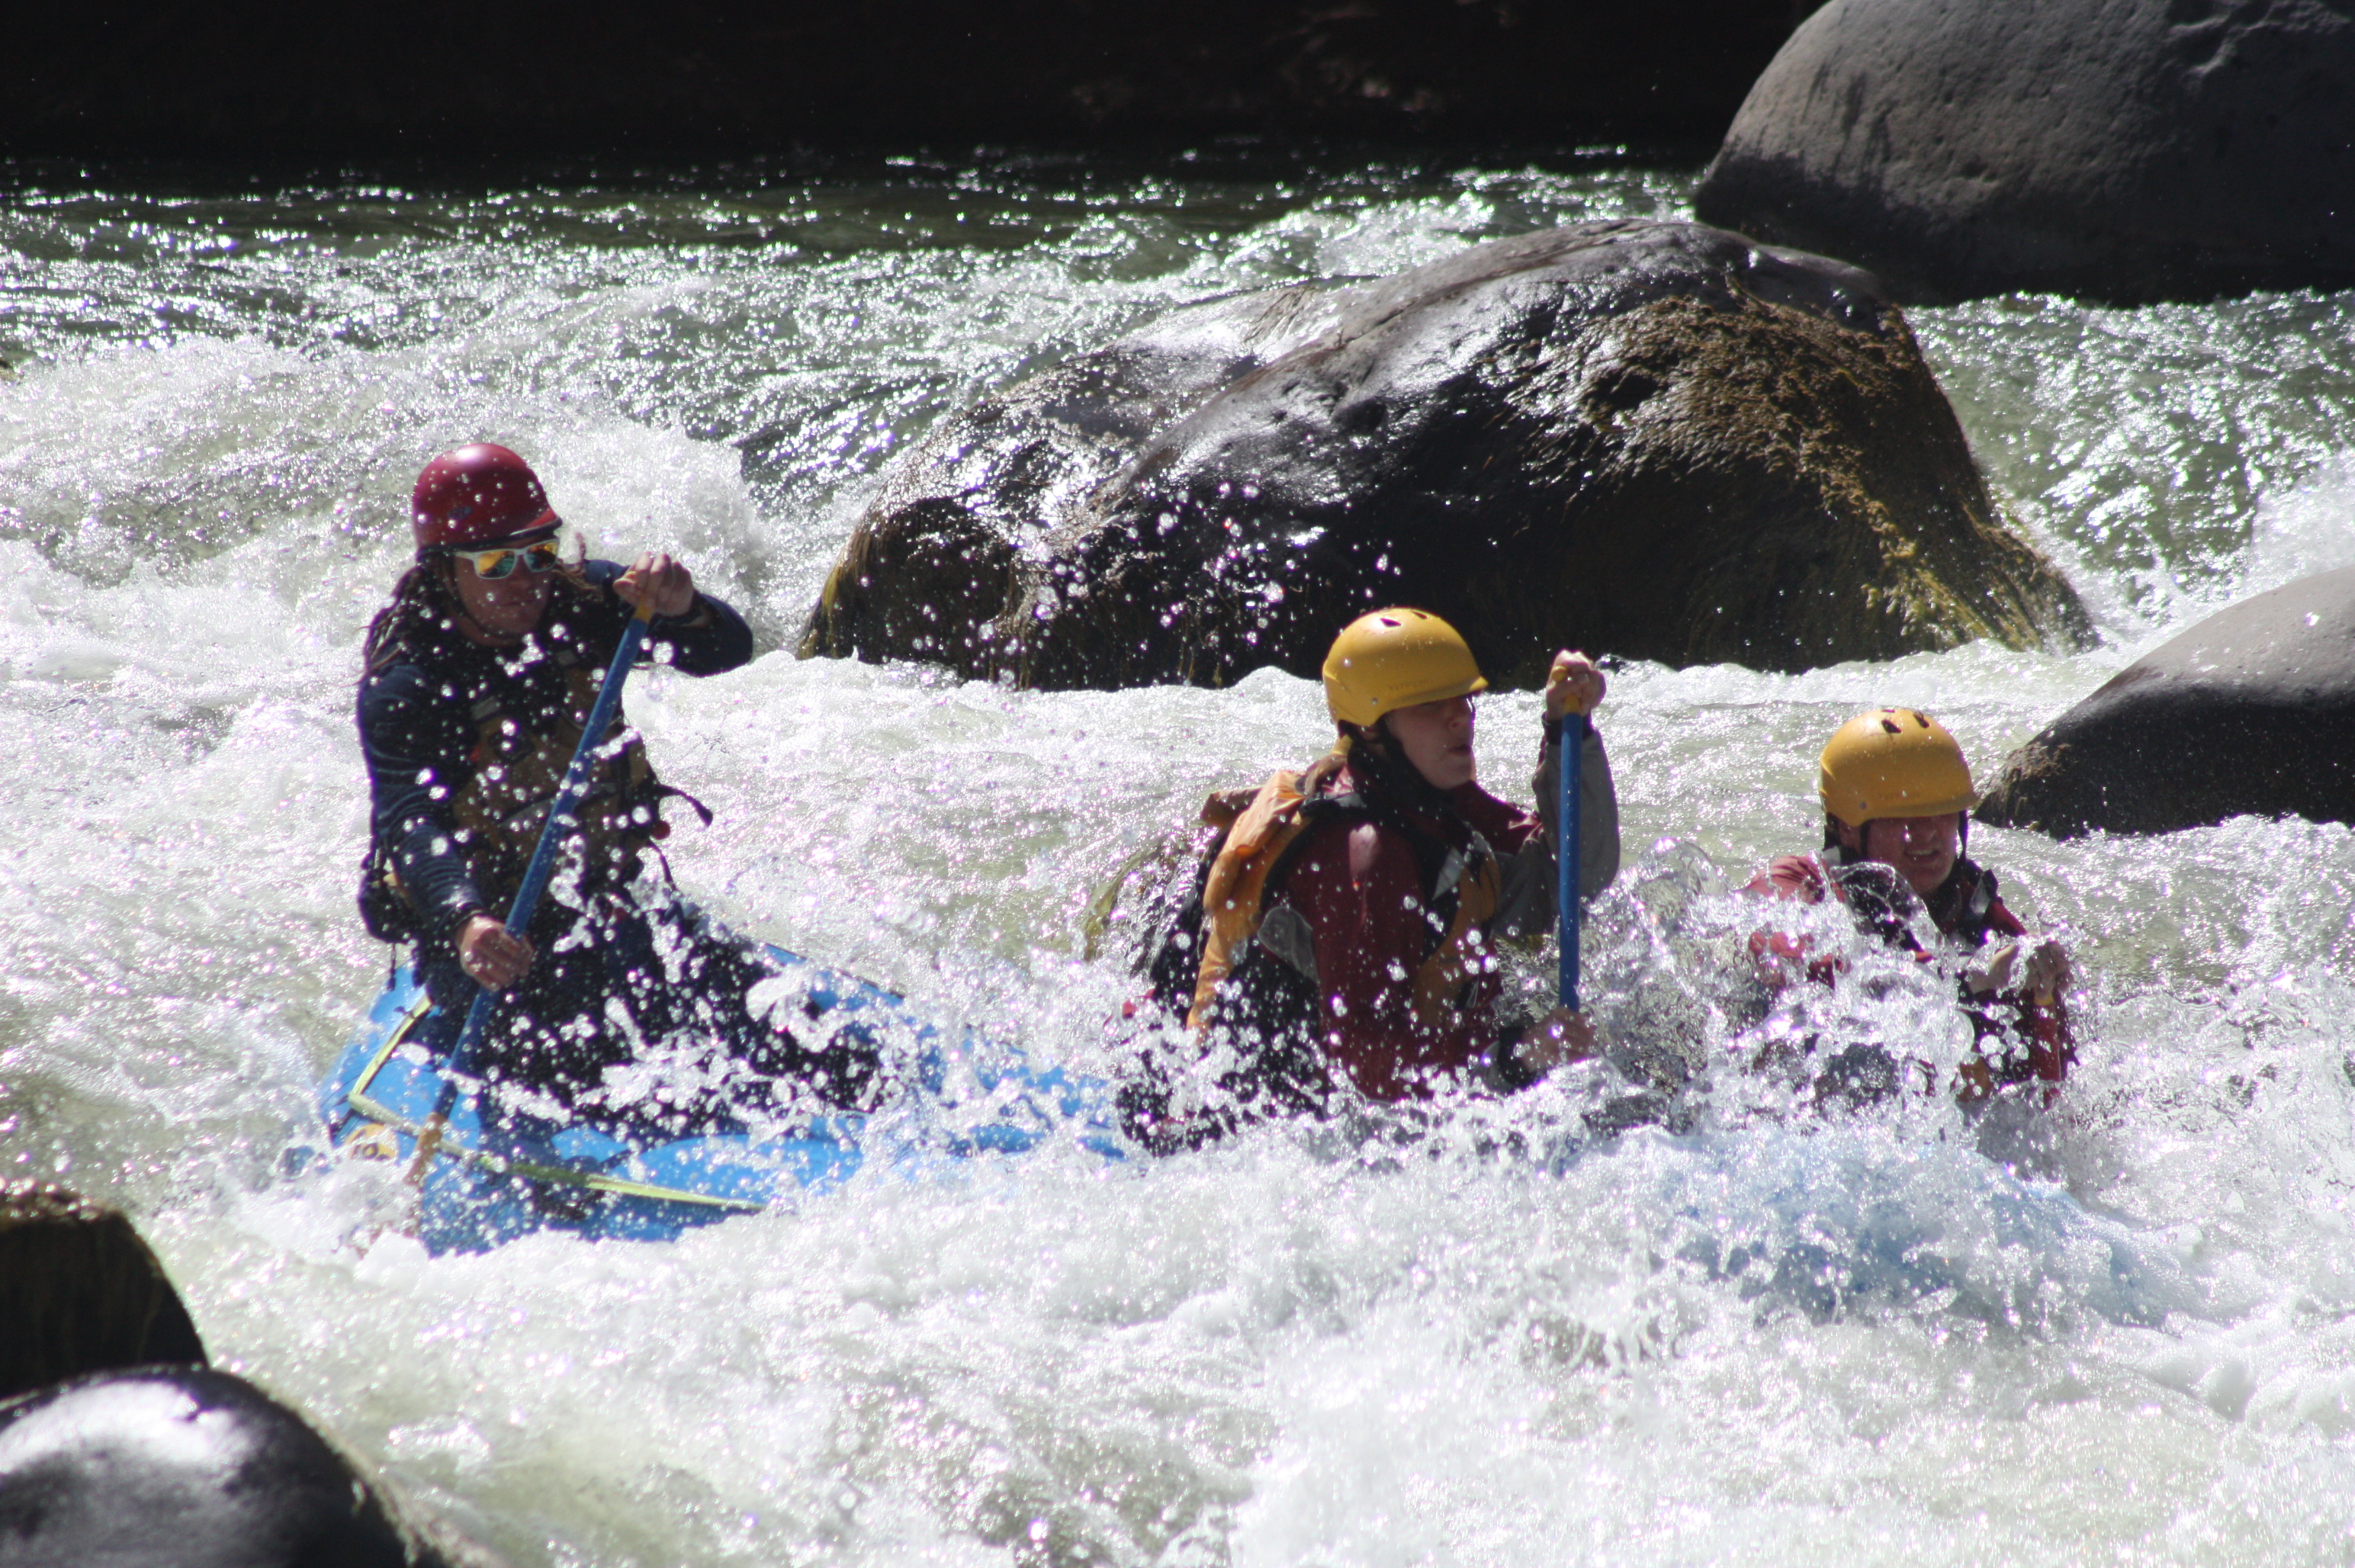 white water rafting in arequipa peru adrenaline sports in peru outdoors activities in Arequipa peru